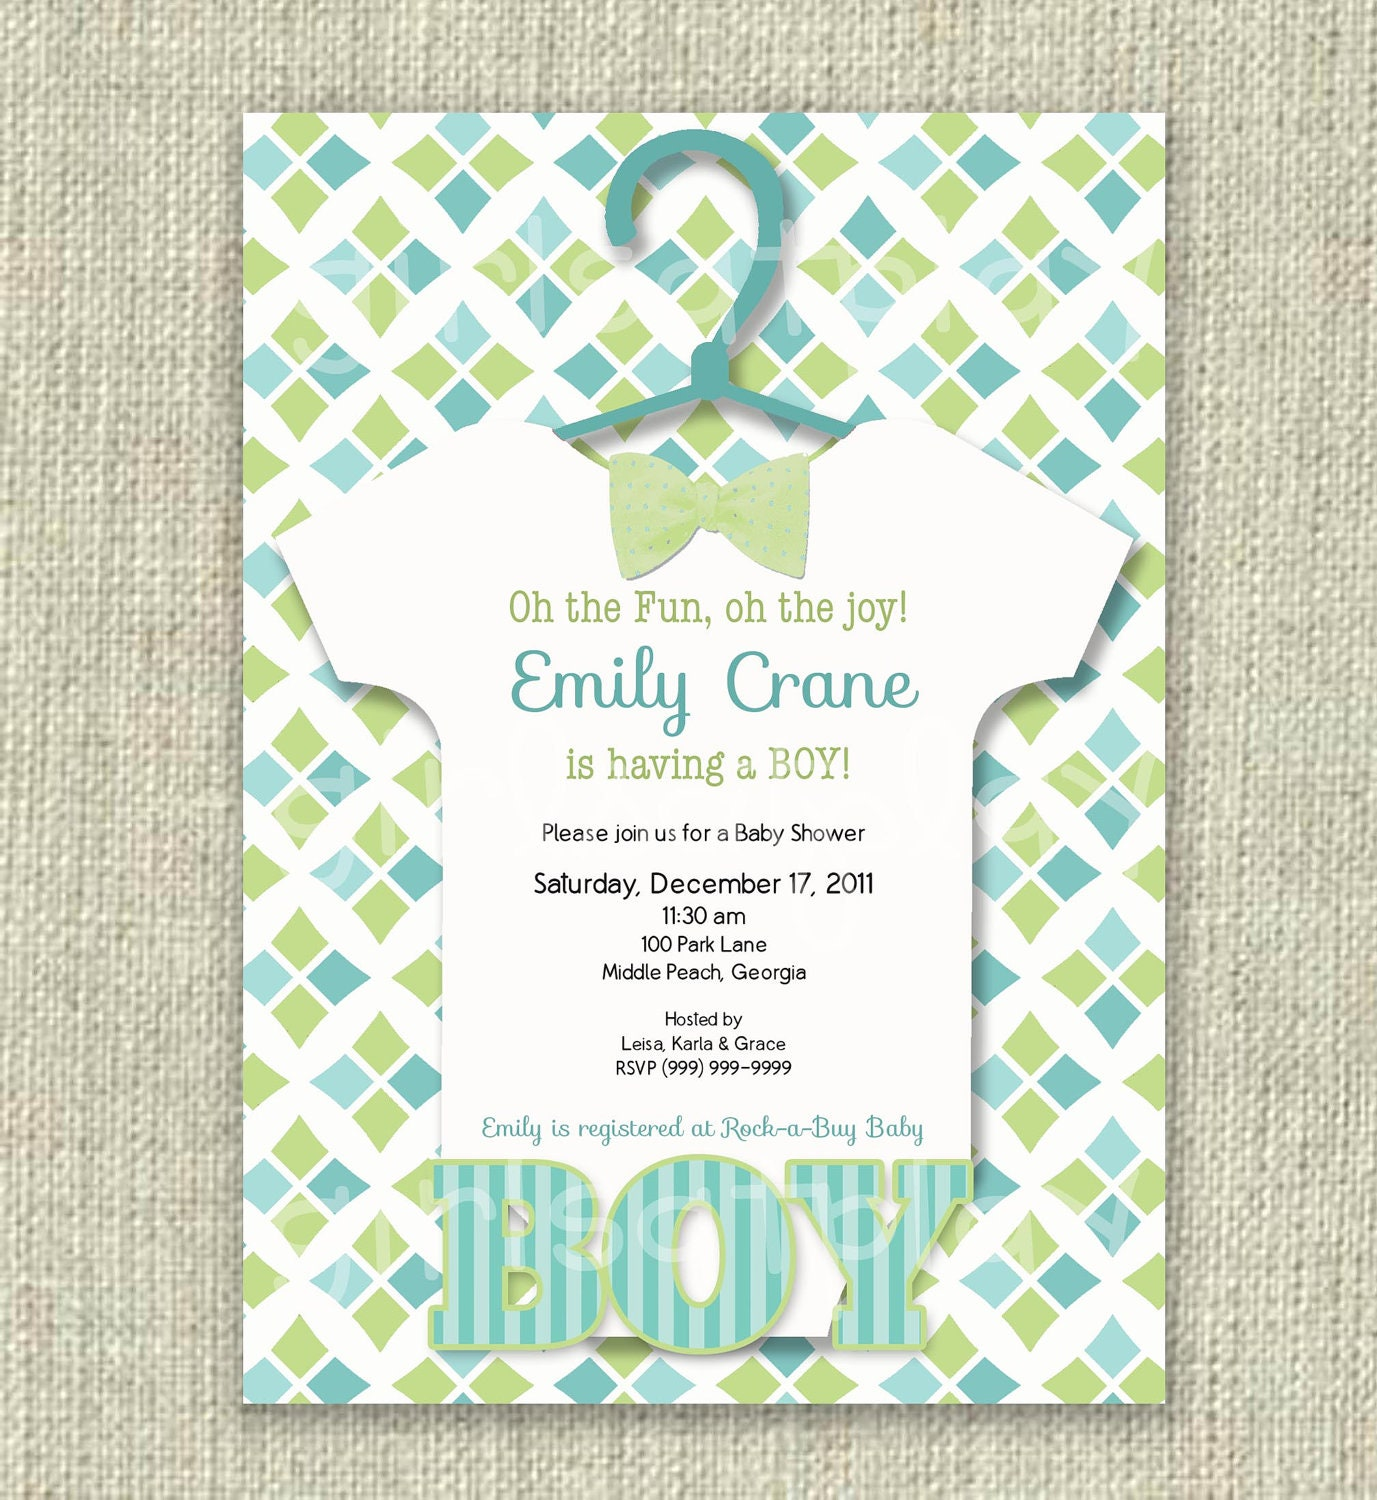 Baby Shower Invitations Bow Tie was good invitations sample